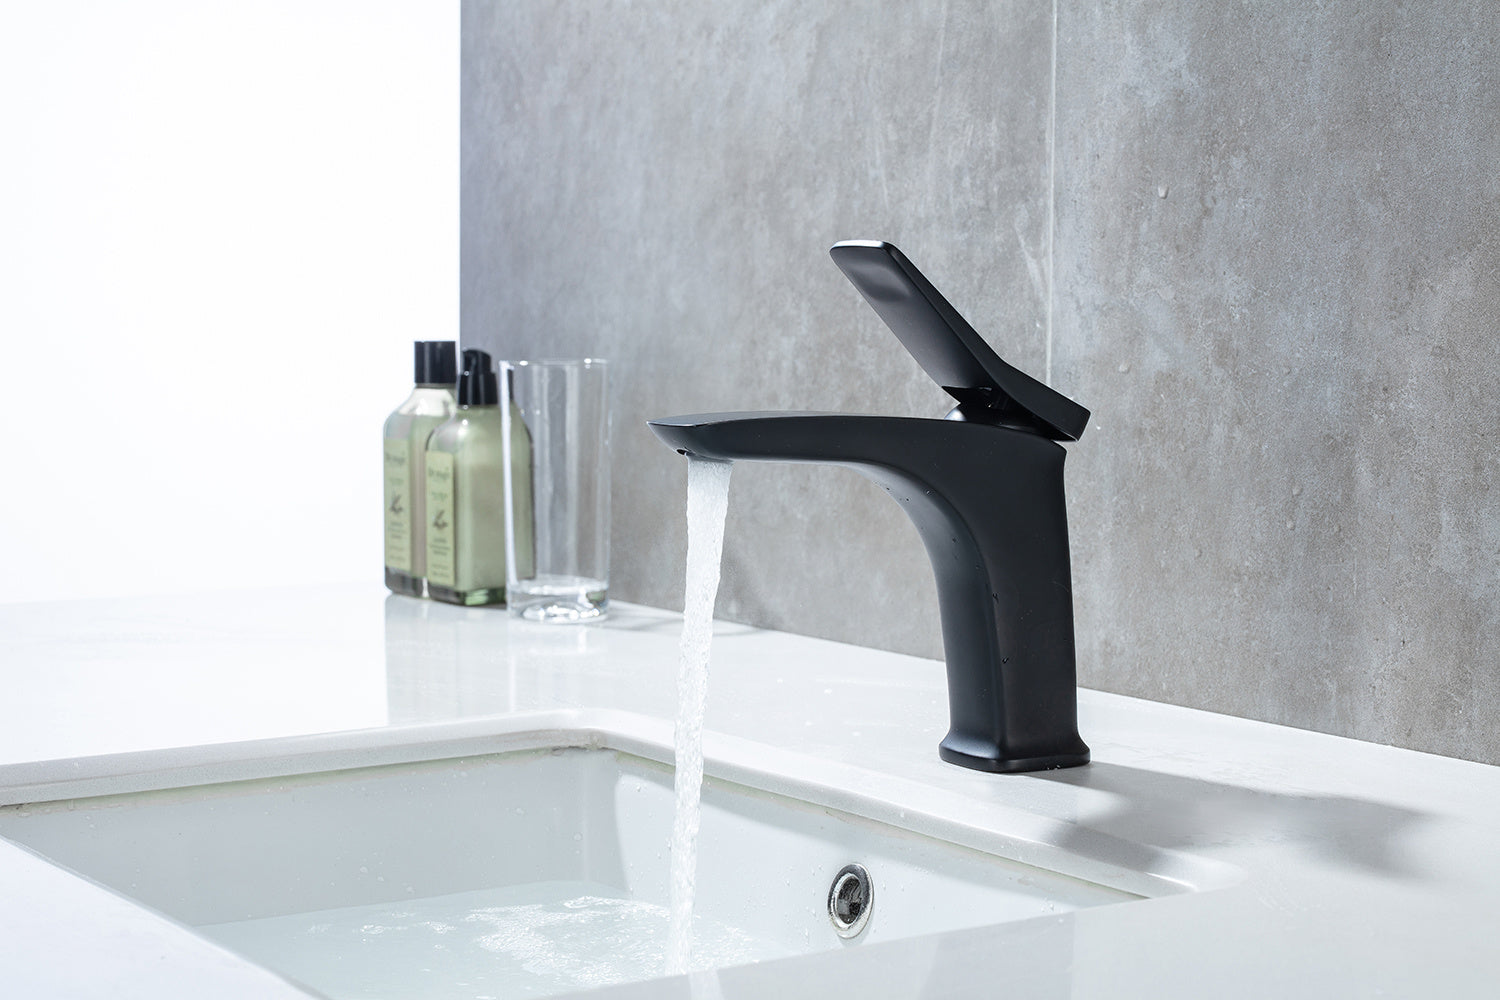 Single Handle Square Bathroom Faucet, Single Hole Modern Solid Brass Basin Mixer Taps